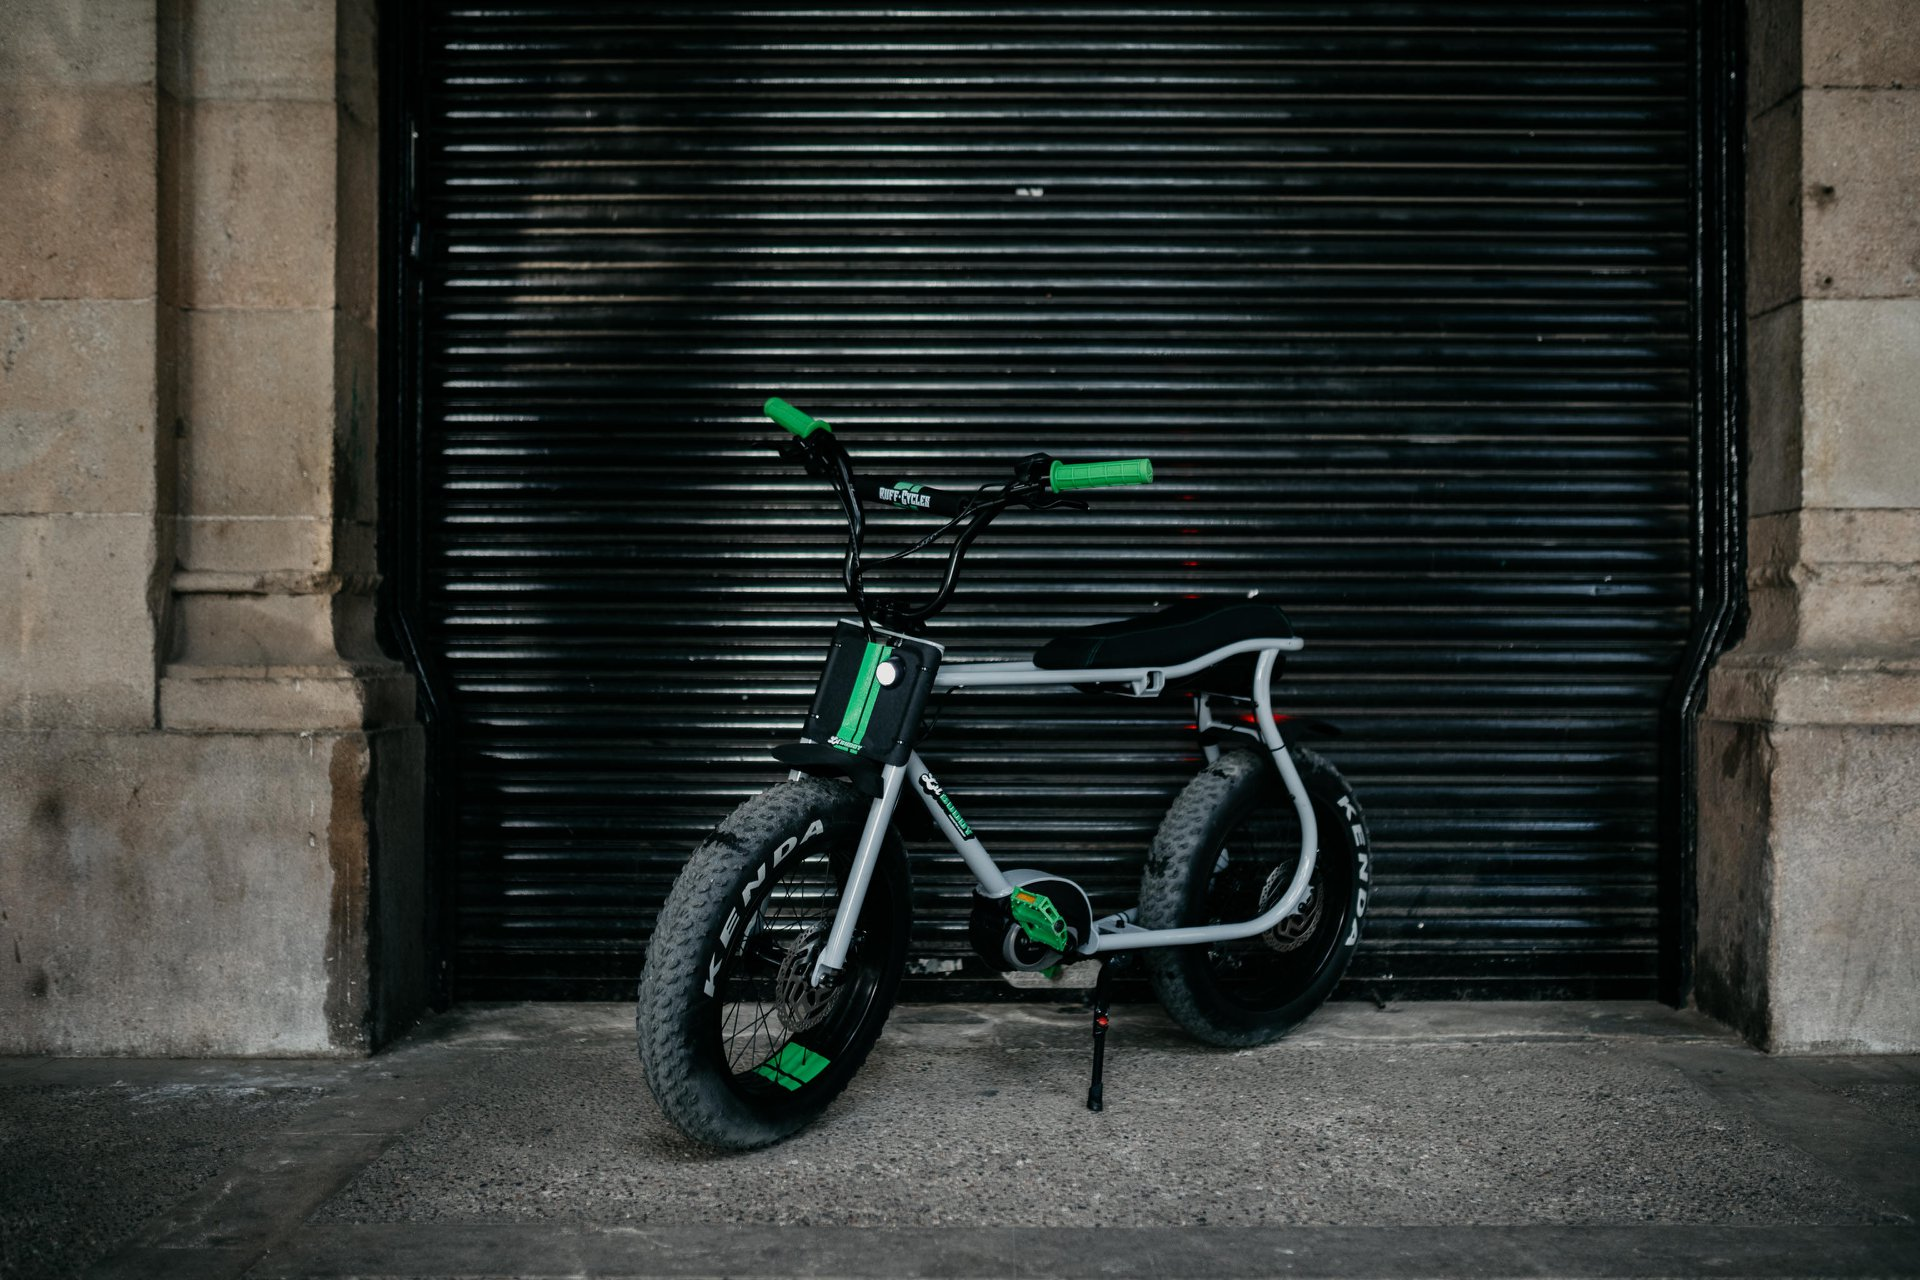 LIL'BUDDY E-bike is Ingenious Move By Ruff Cycles | EvNerds